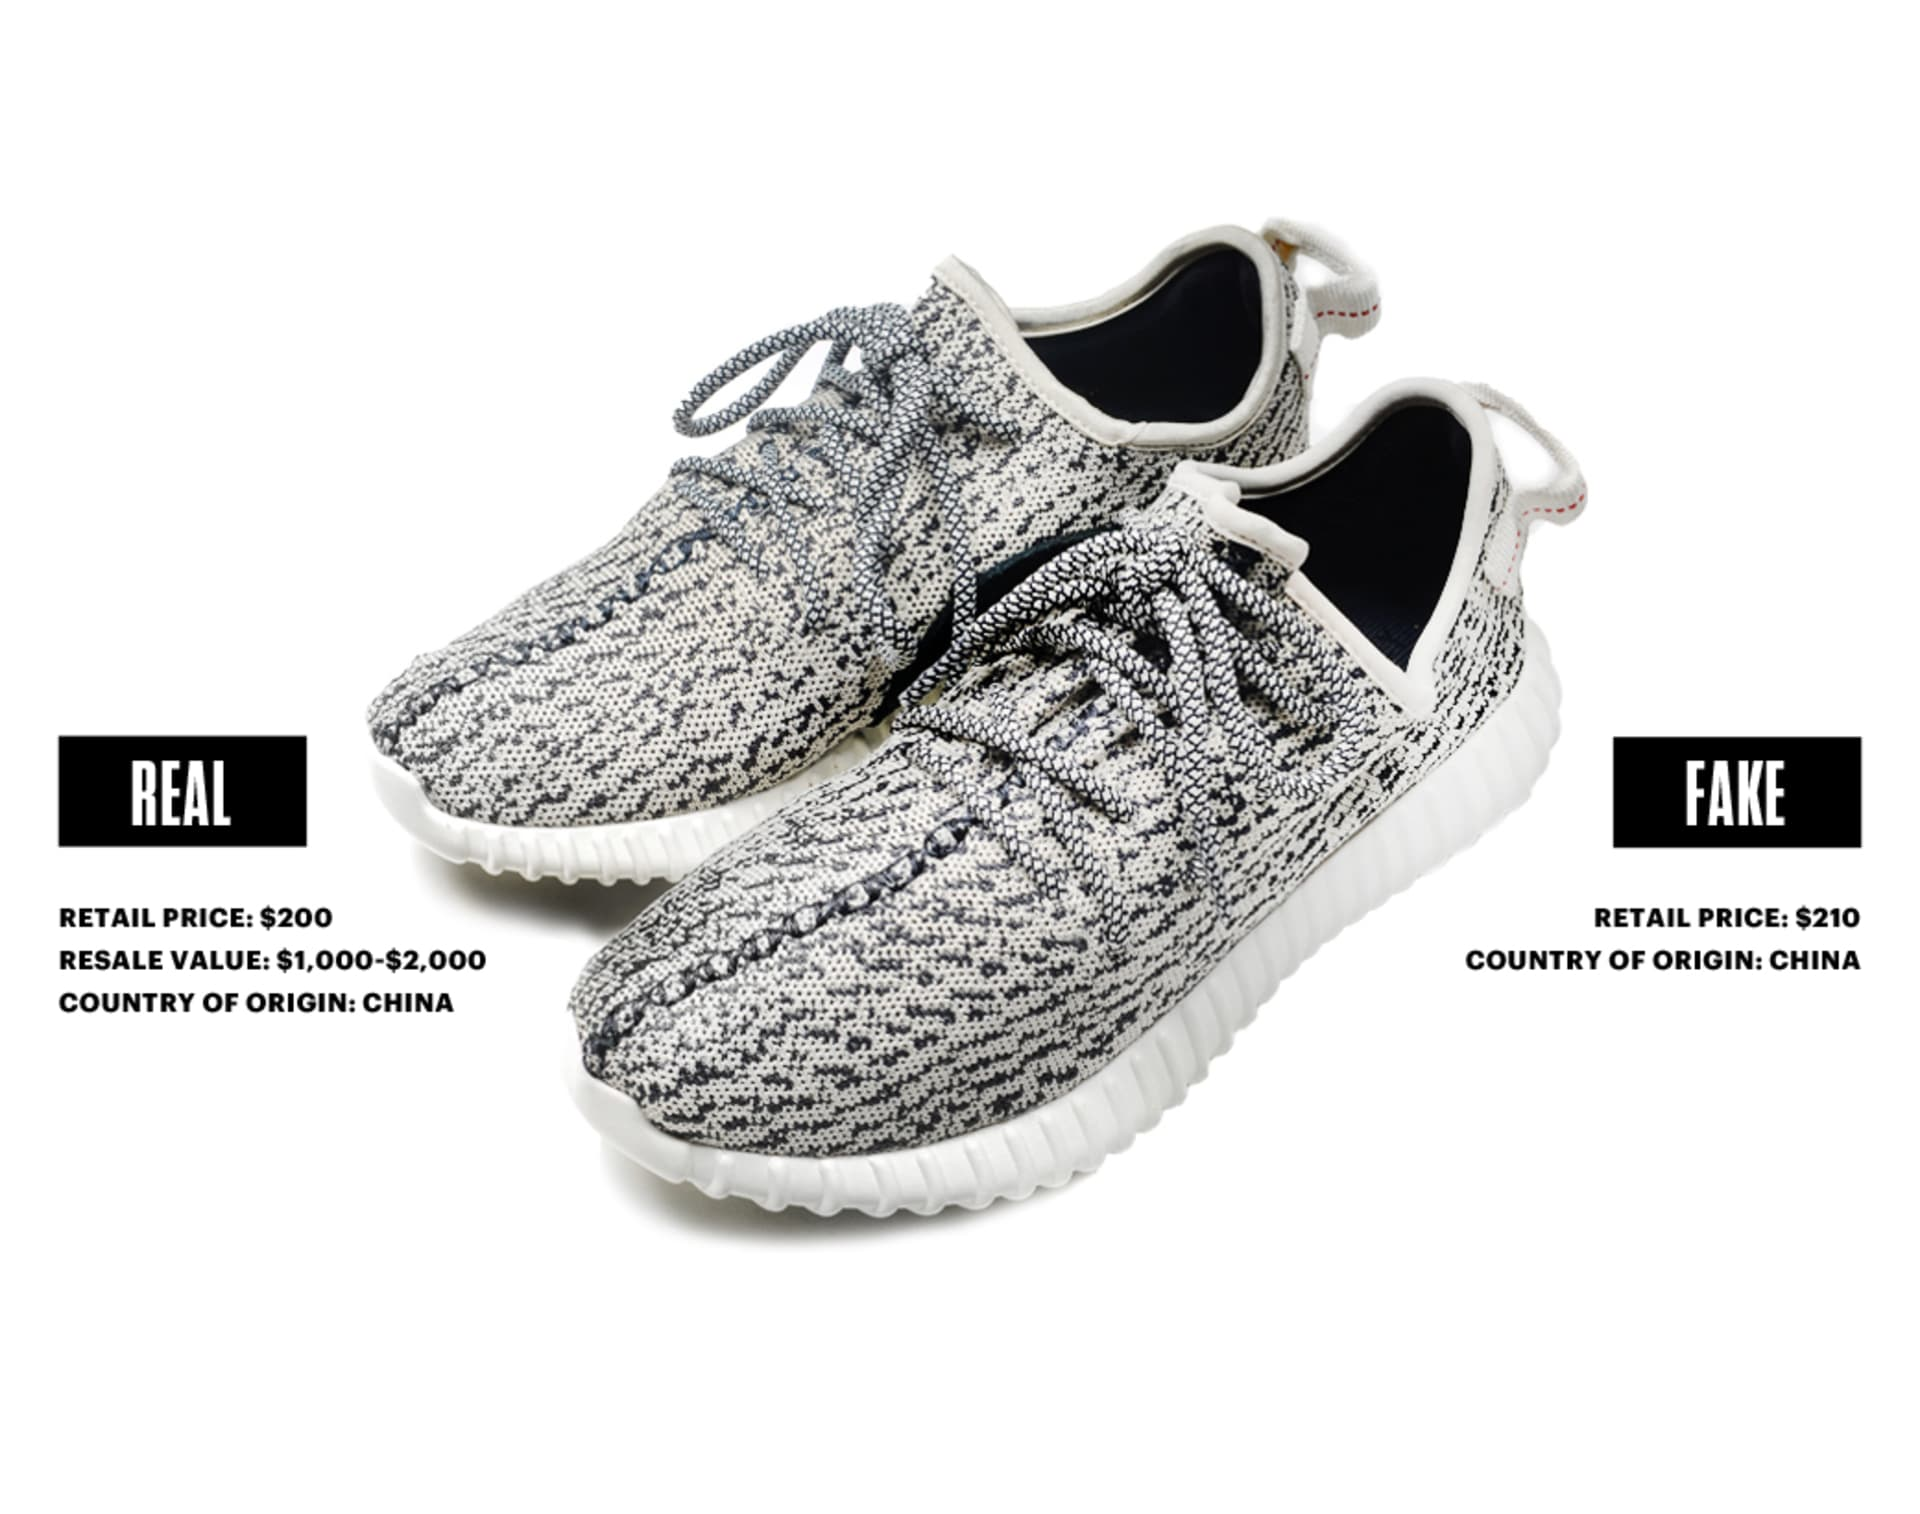 timeless design adcd9 2bdef Fake vs. Real Yeezy 350 Boosts. Photo by Liz Barclay.